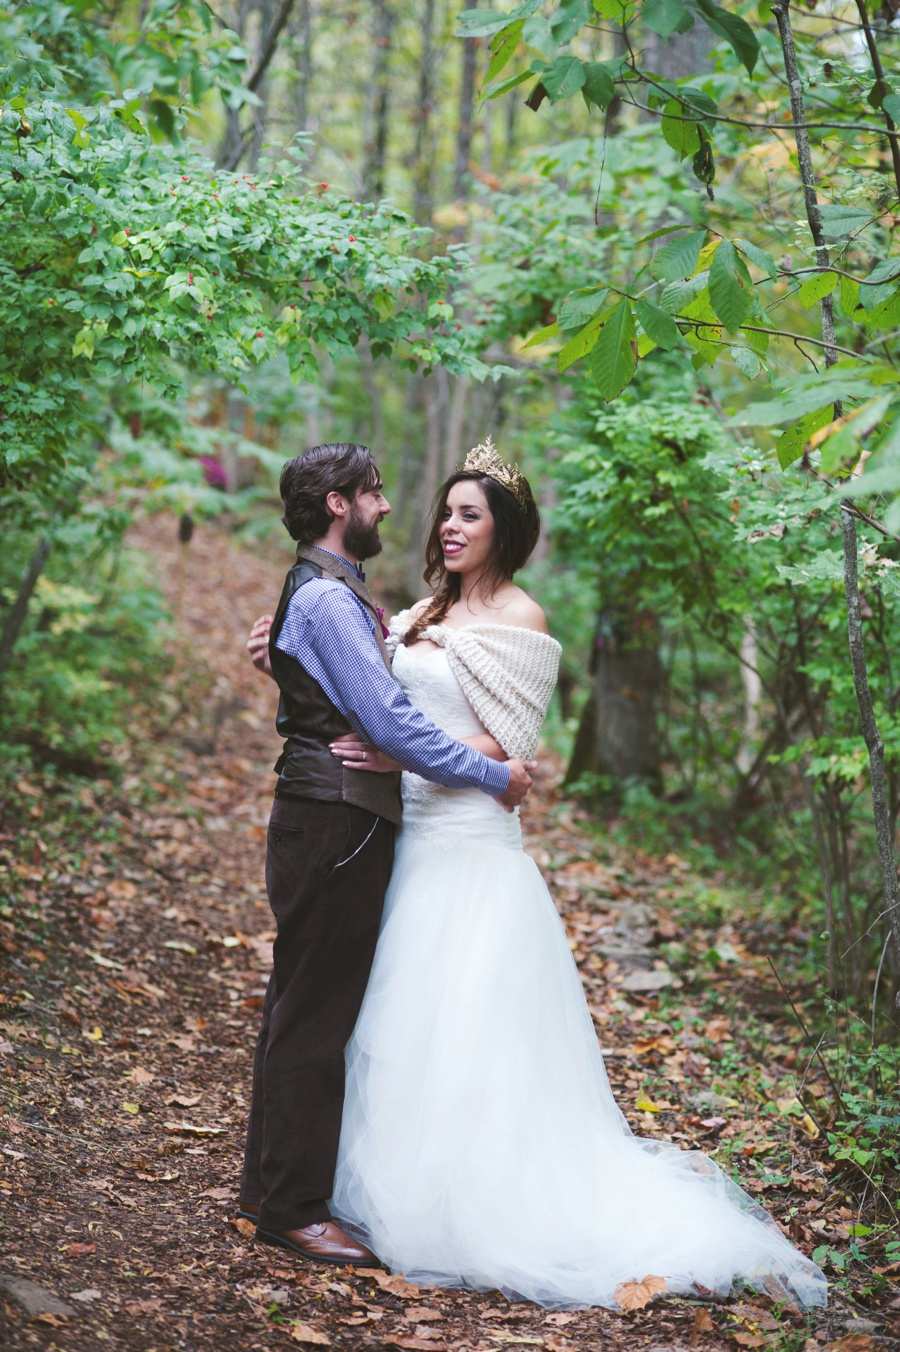 View More: http://nikitagrossphotography.pass.us/nikki-and-dustin-9-26-15